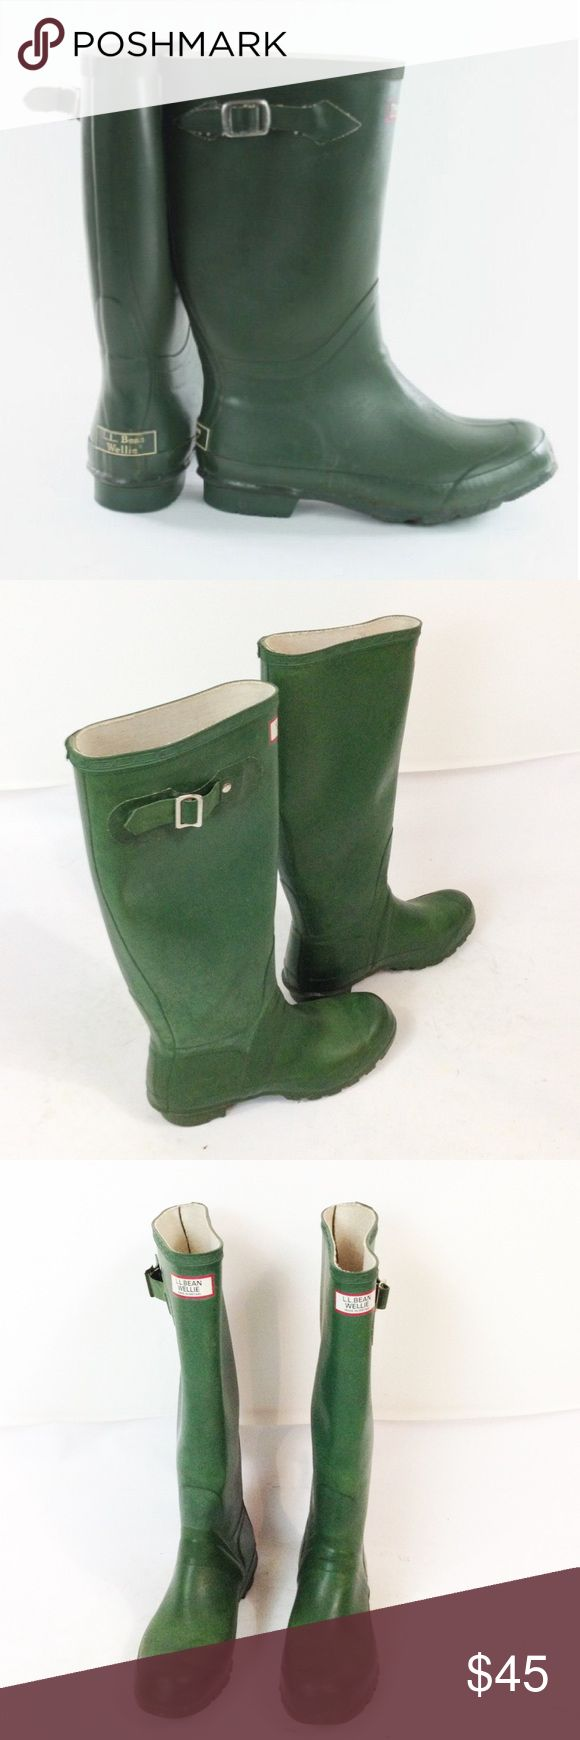 LL Bean Green Wellies Rain Boots Hunter Style Classic green wellie boots from LL Bean. High quality and perfect for even the rainiest of days! Made in England. Light scuffing and wear. L.L. Bean Shoes Winter & Rain Boots